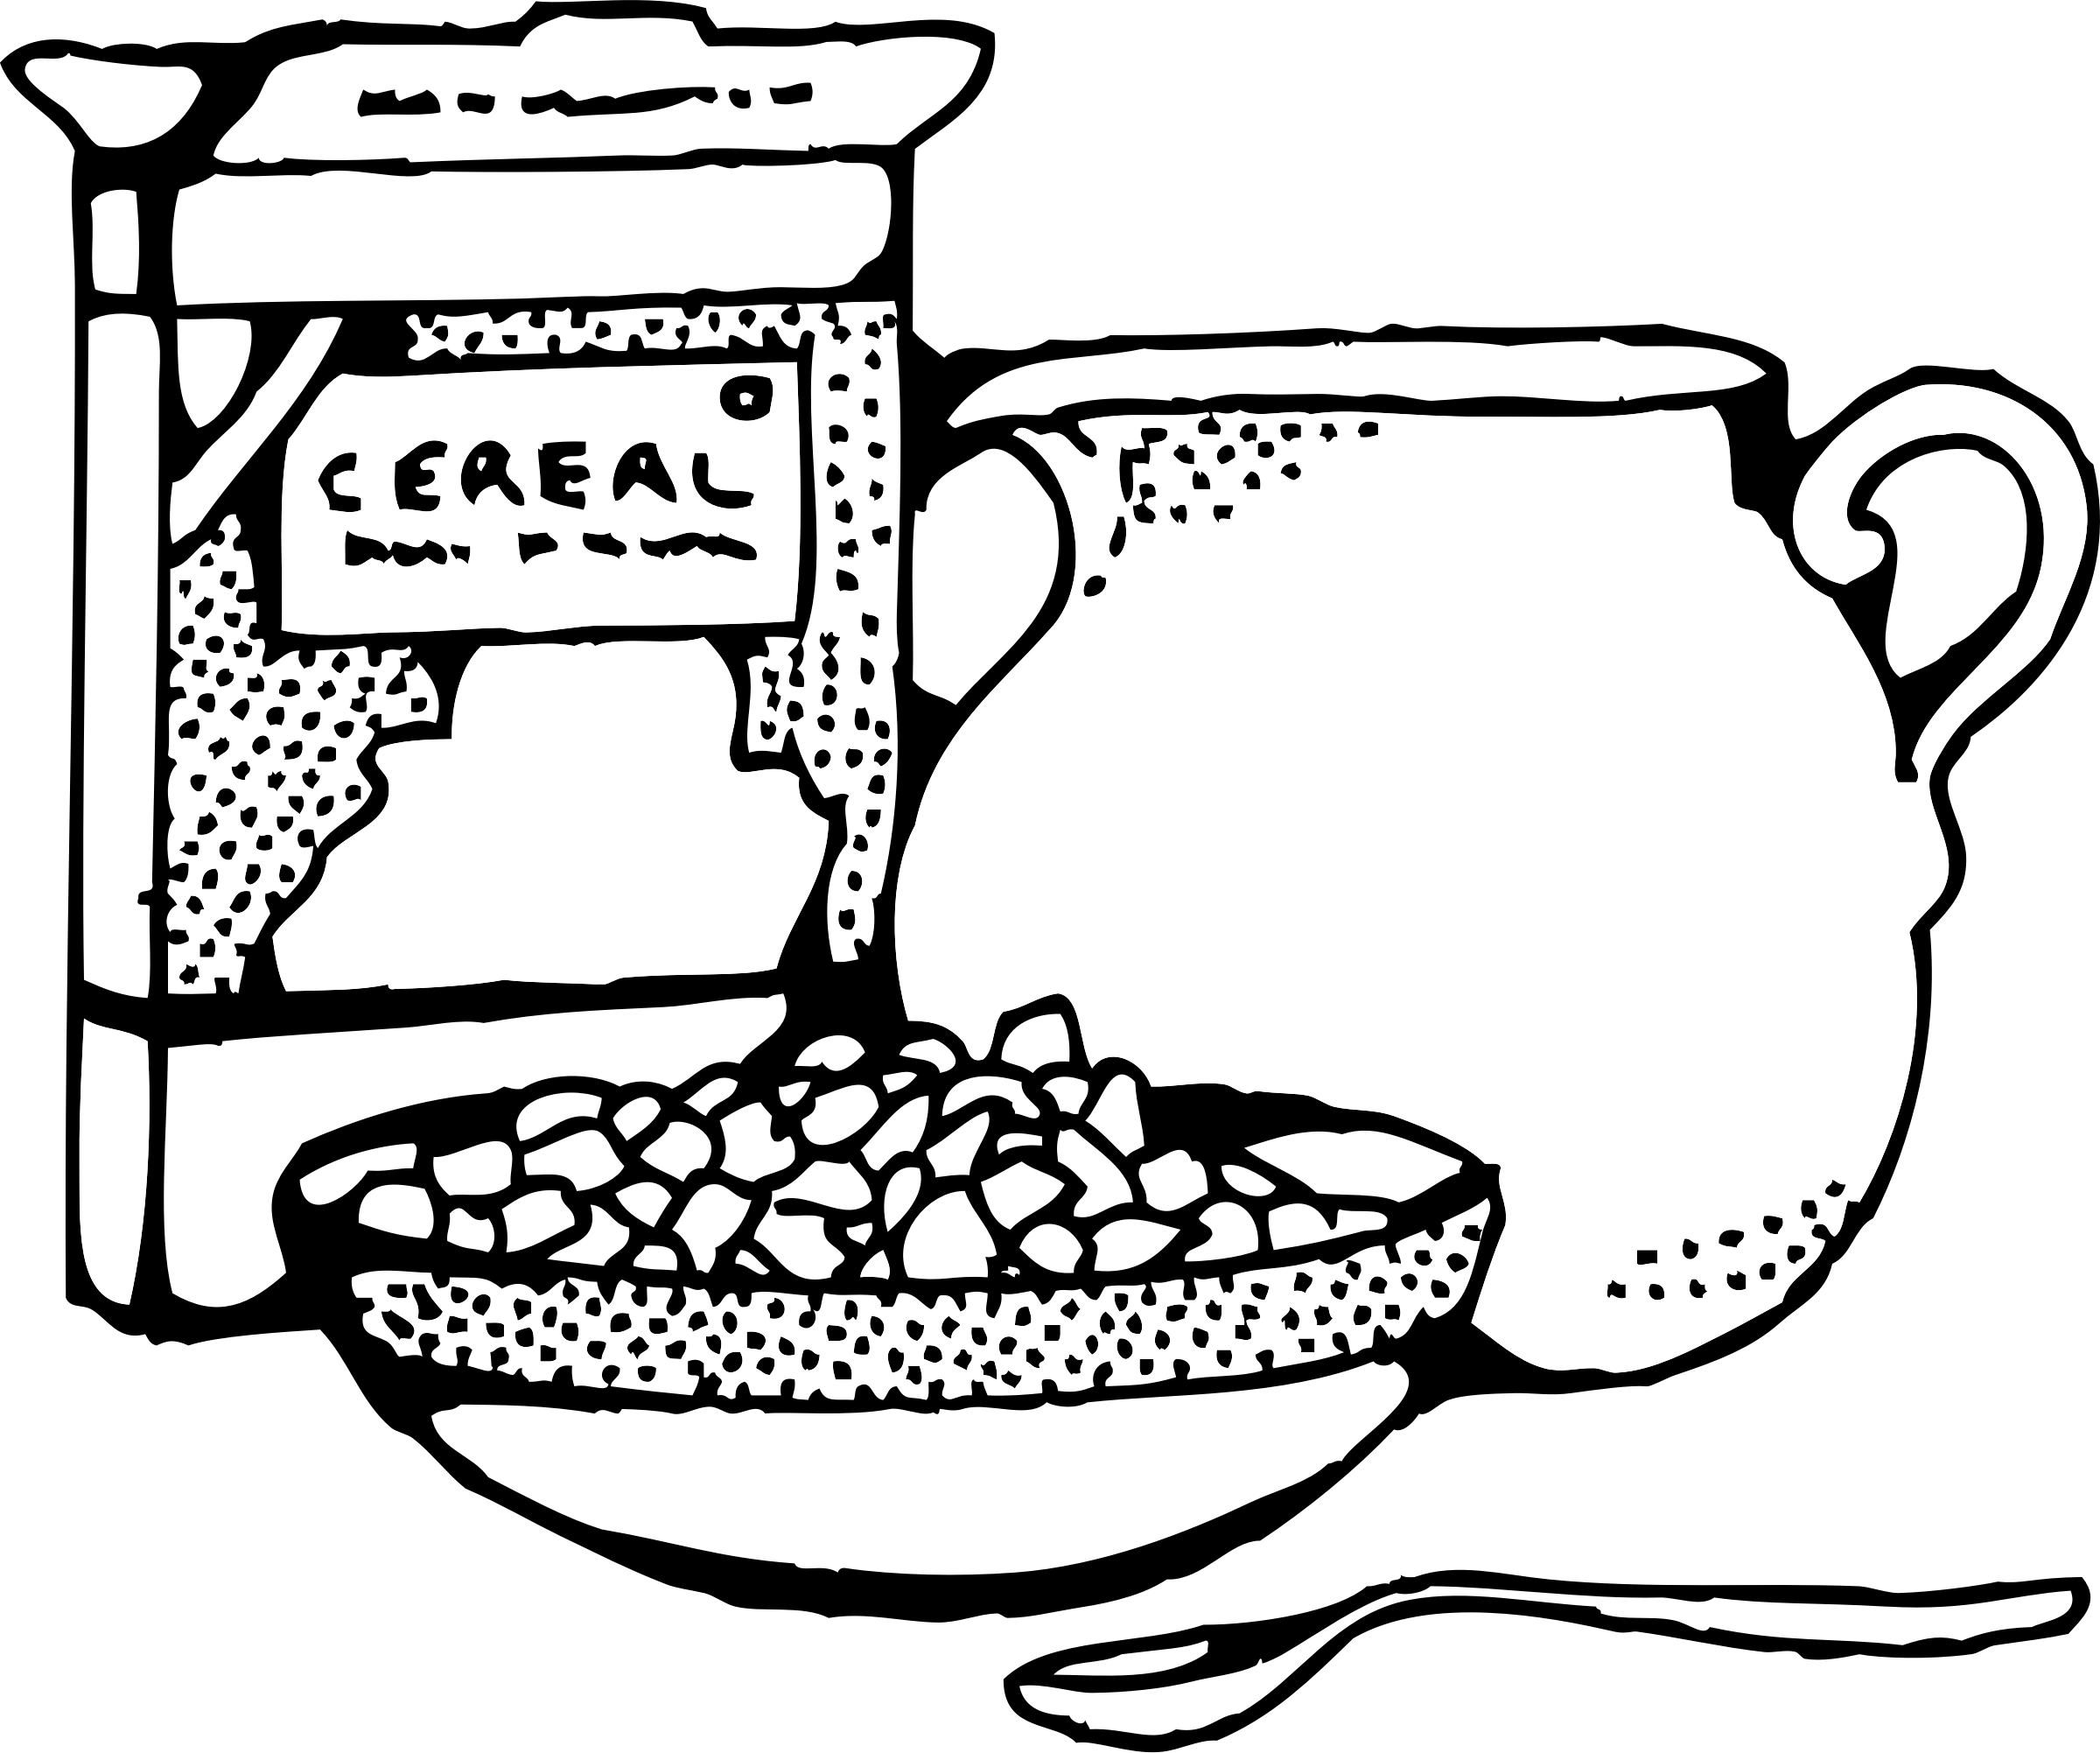 Cereal box drawings png. And milk icons free